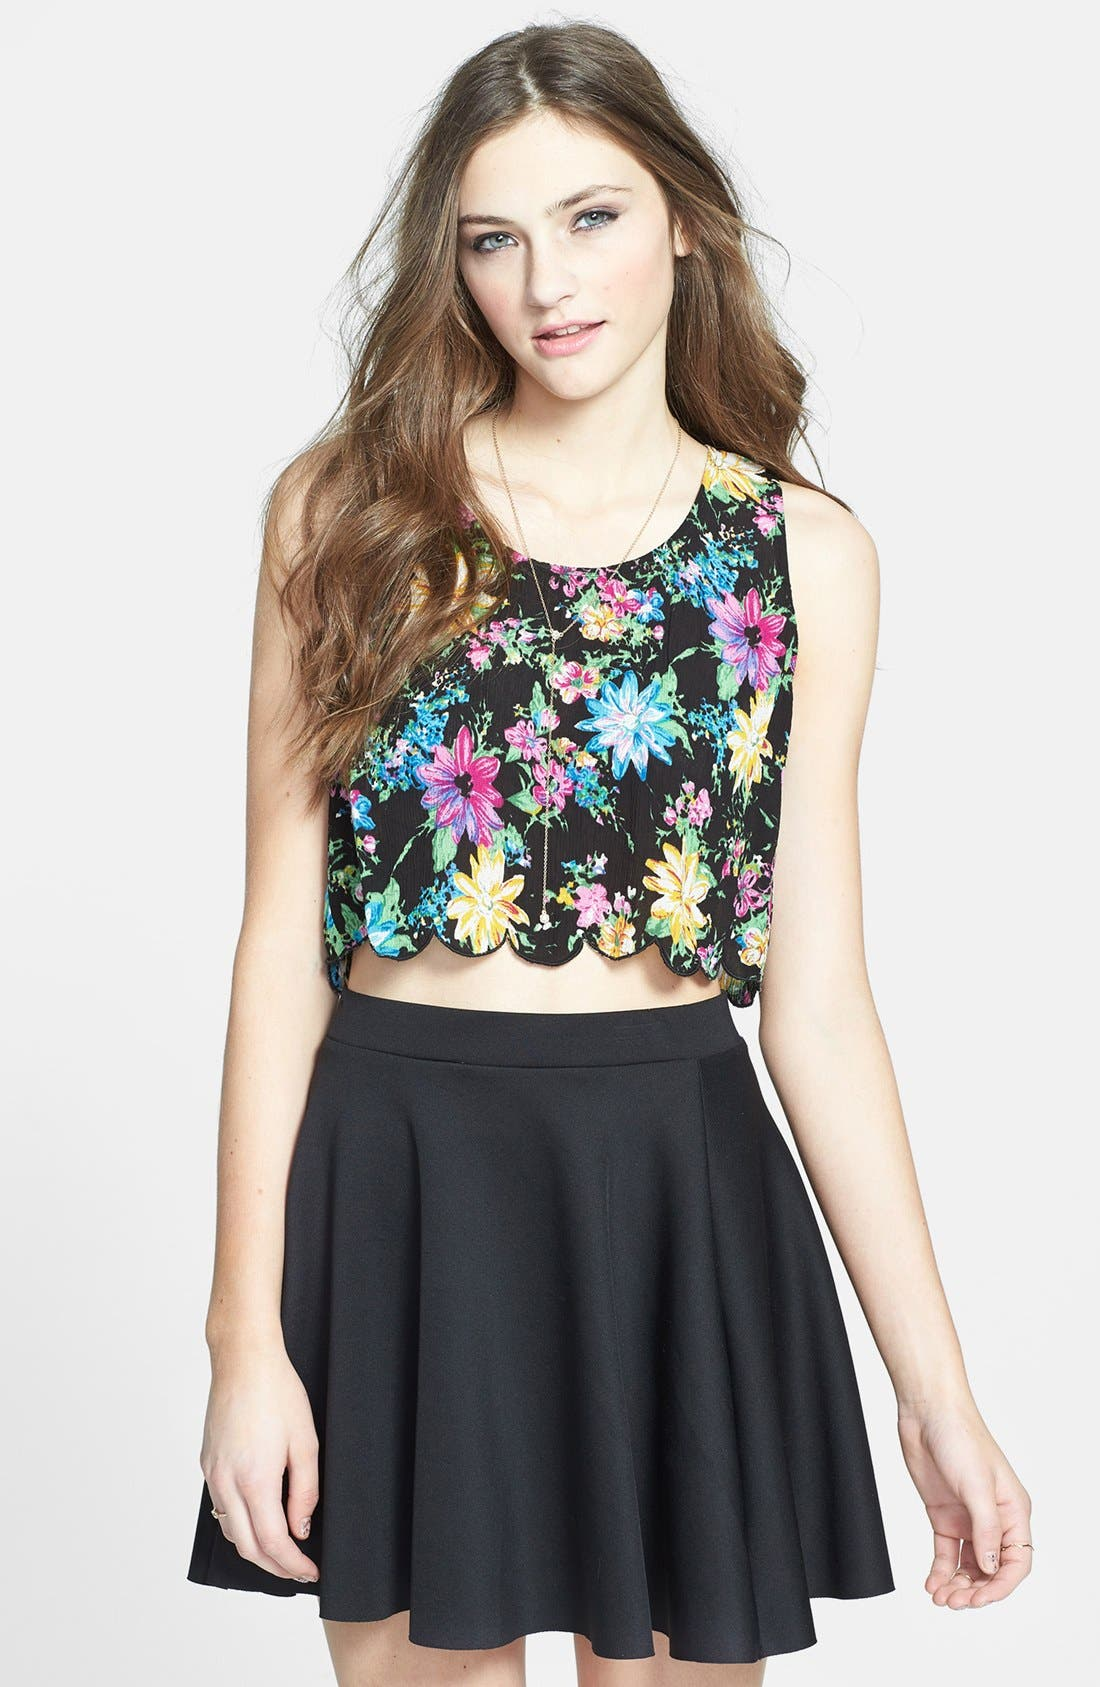 Alternate Image 1 Selected - Lush Scalloped Floral Crop Top (Juniors) (Online Only)